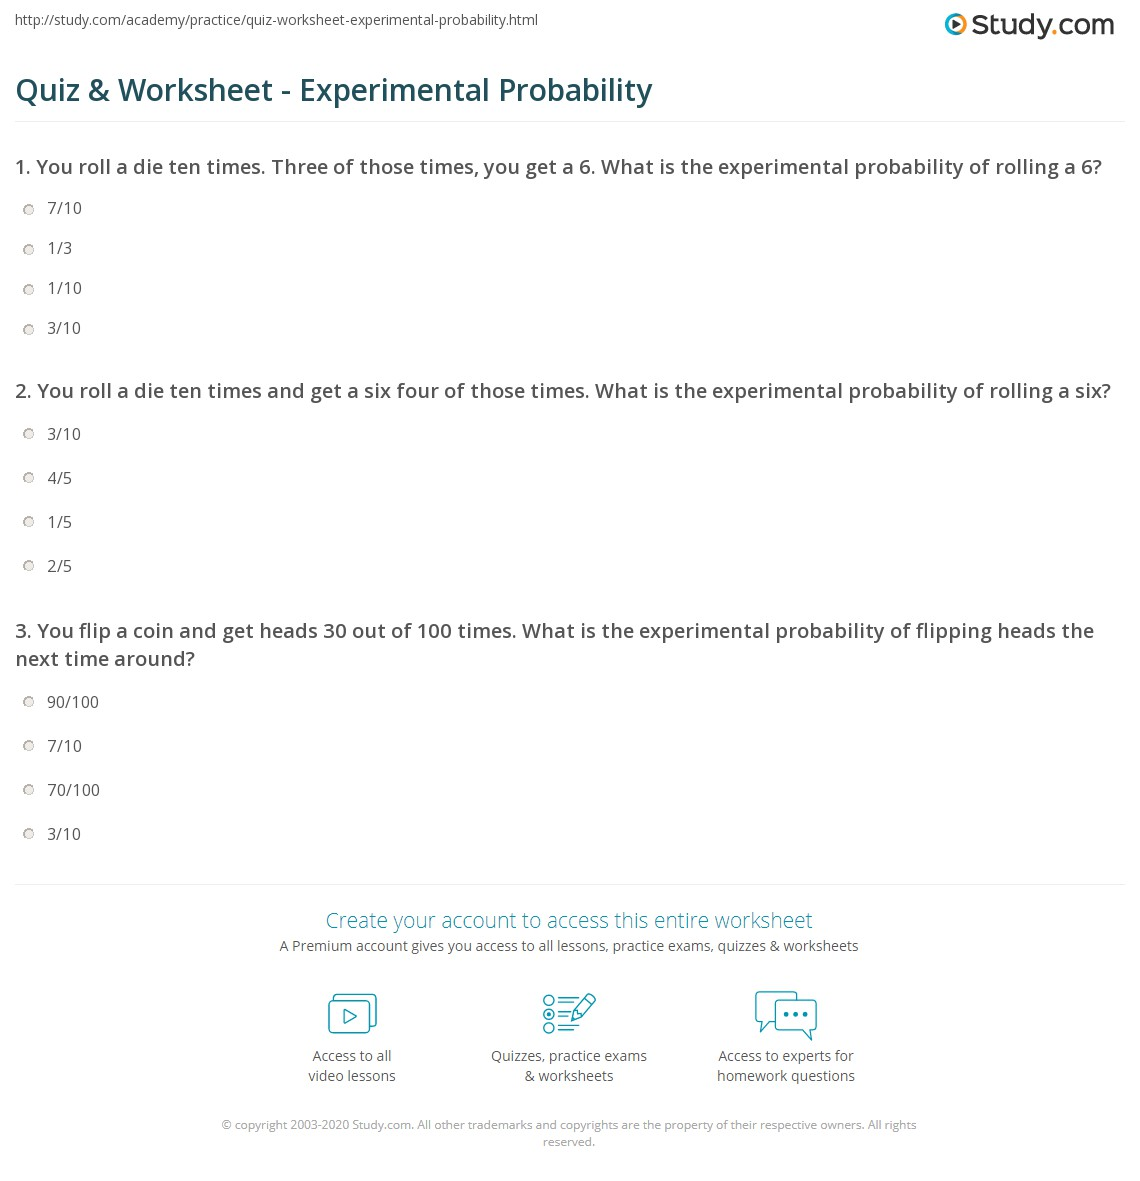 worksheet Experimental Probability Worksheets quiz worksheet experimental probability study com print definition predictions worksheet